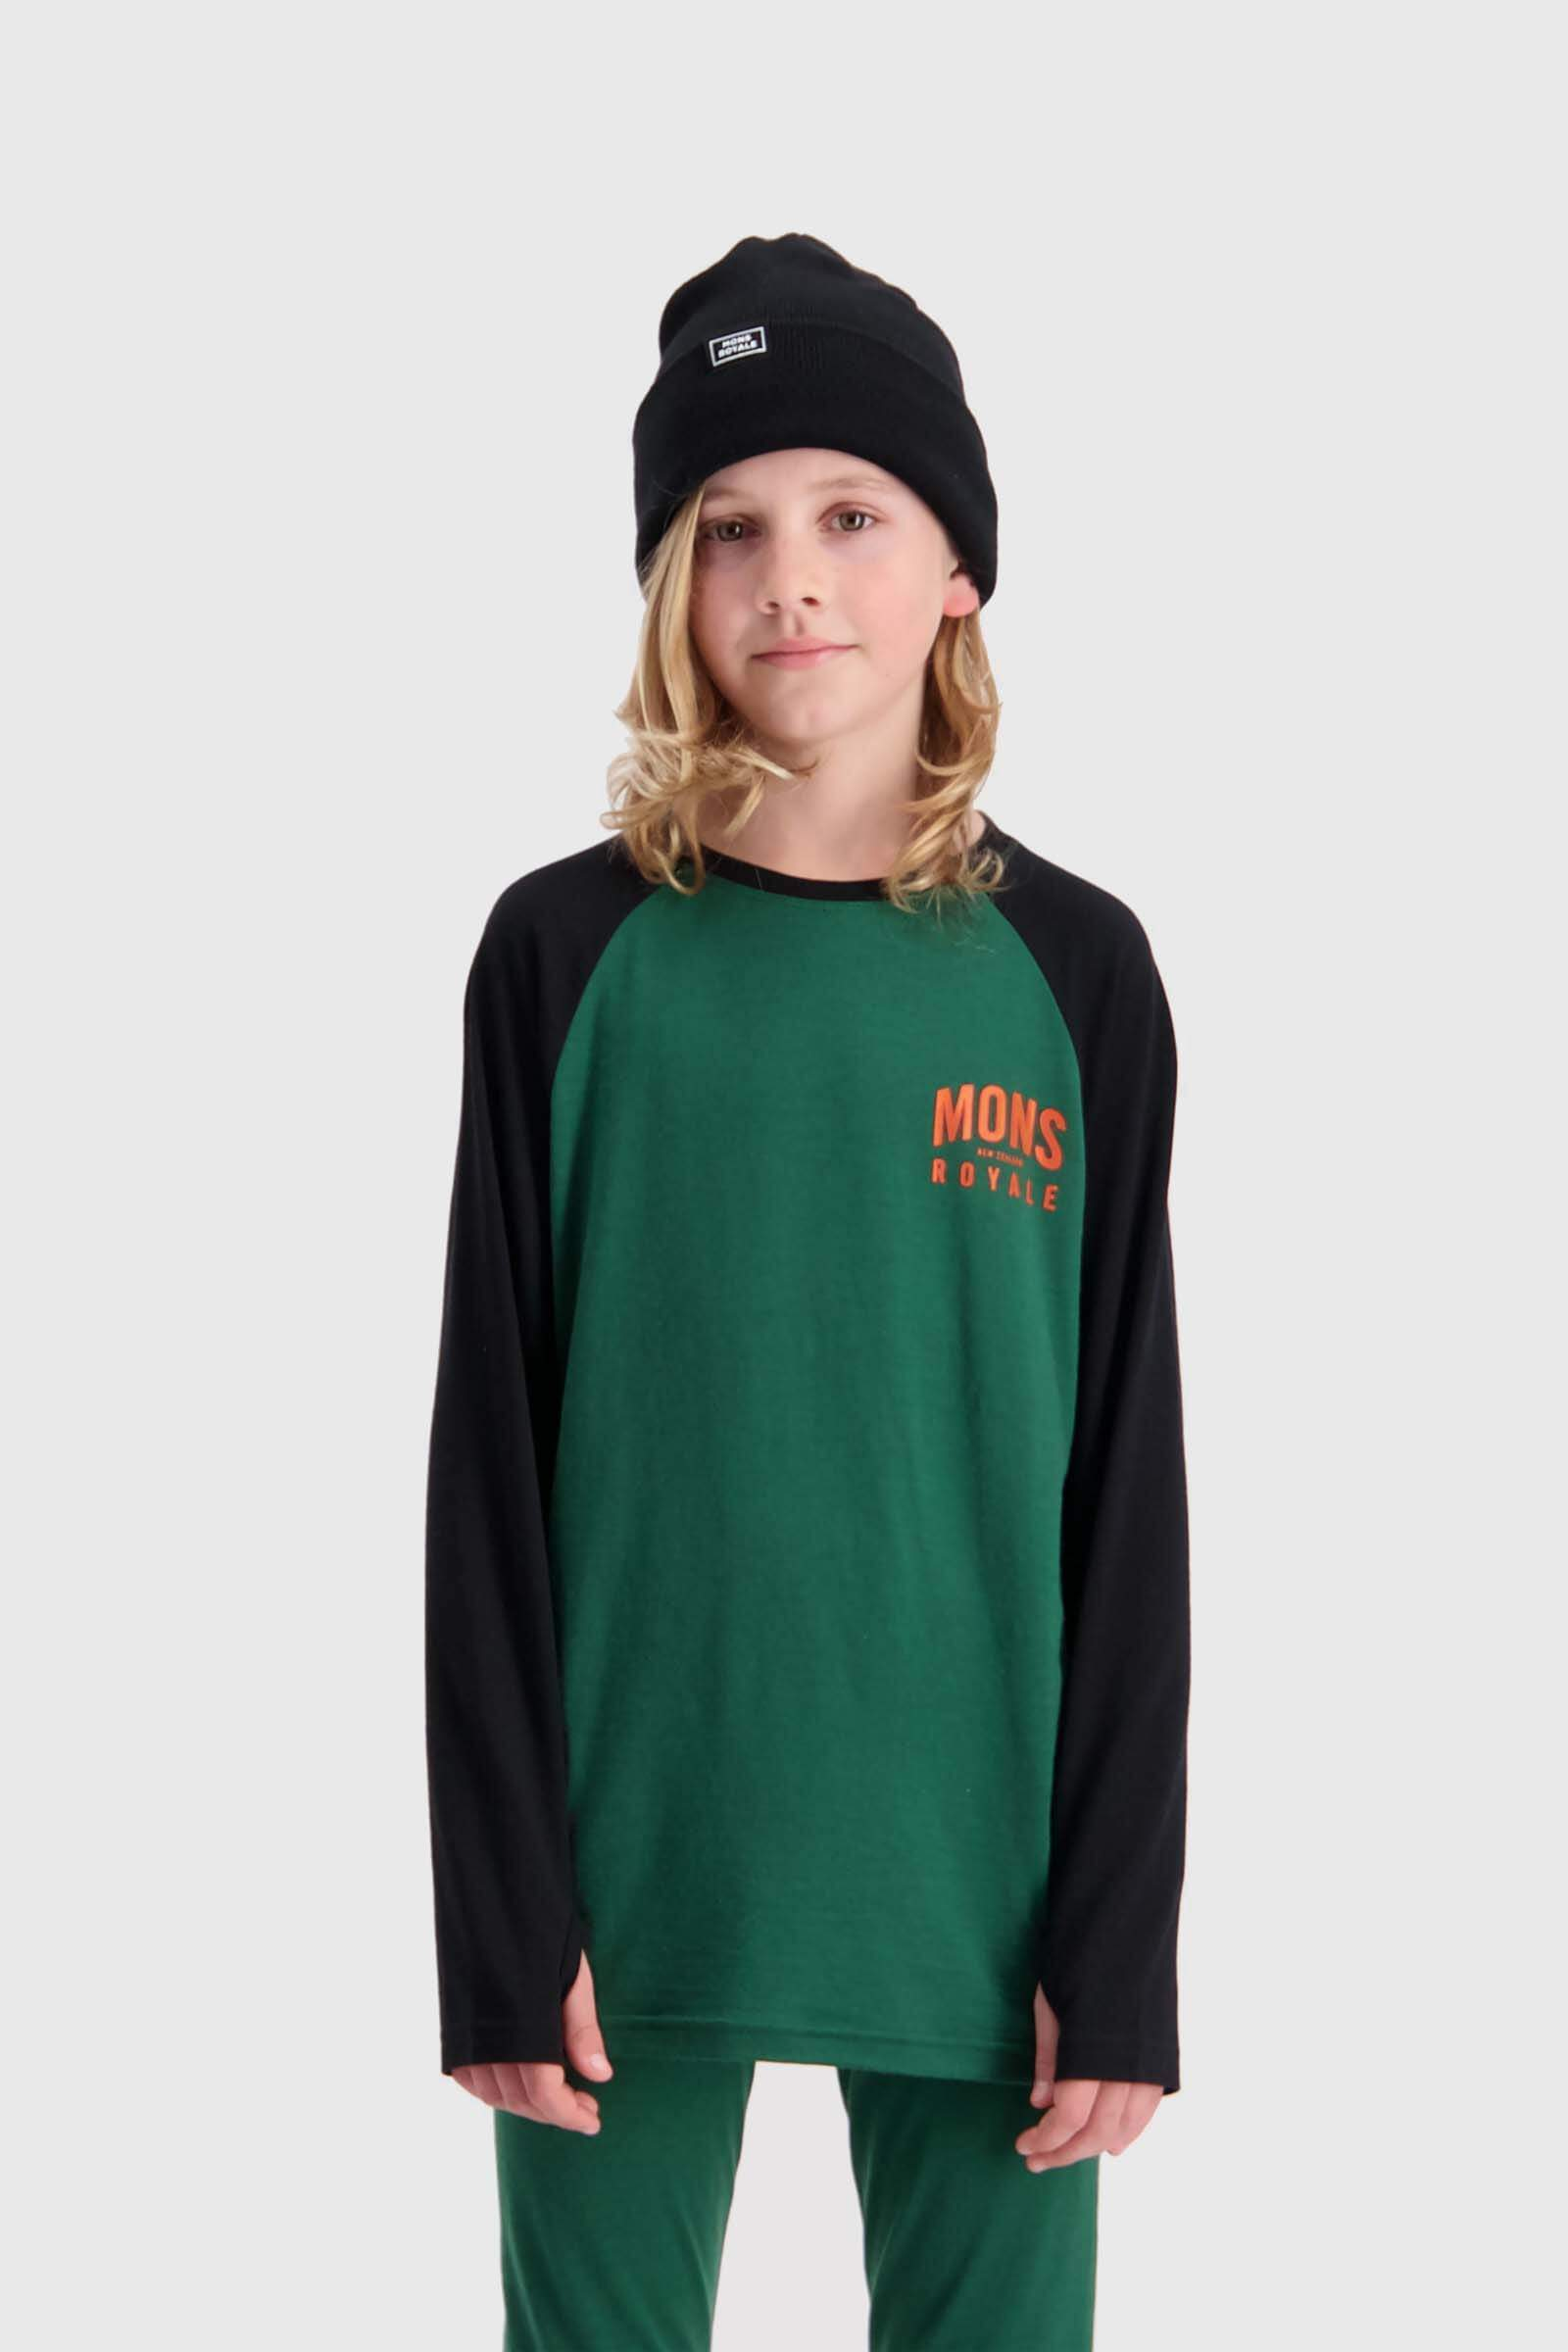 Groms LS - Pine / Black